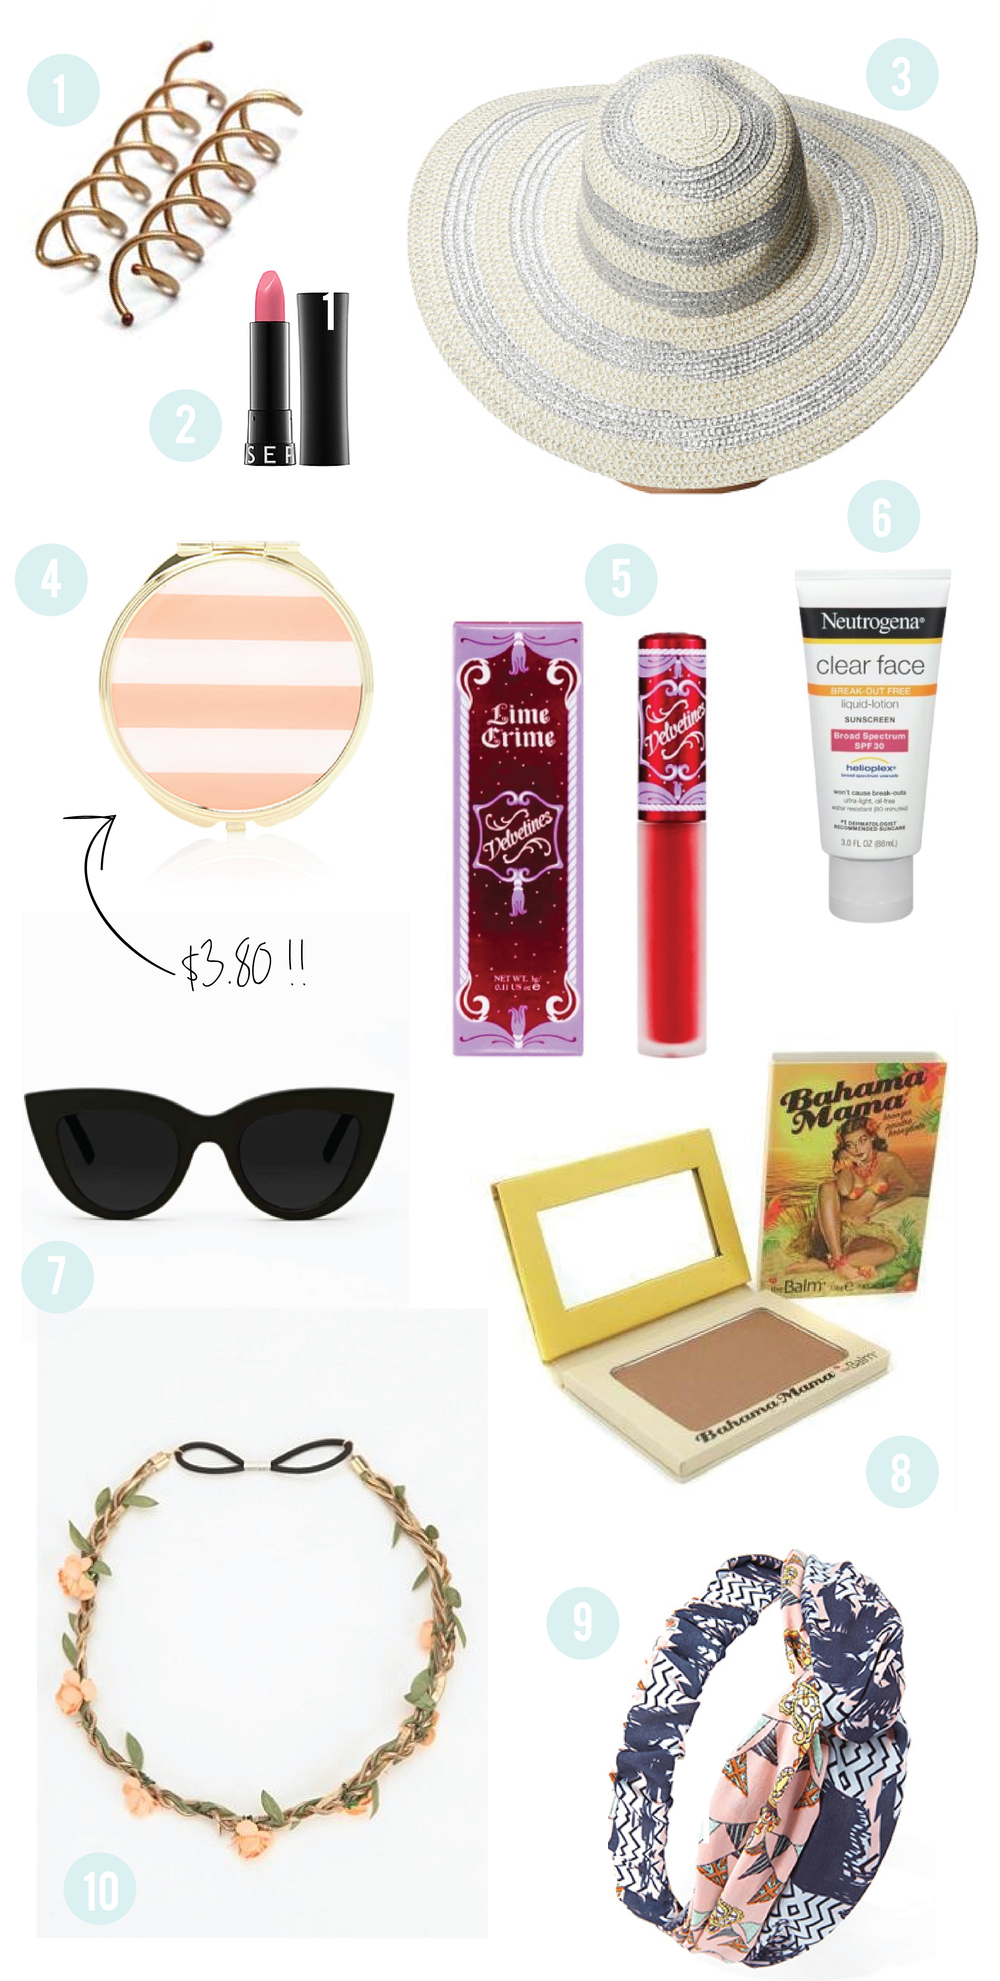 1.  Twist Bobby Pins    2.  Sephora Lipstick in Miss or Madam    3.  Striped Floppy Hat    4.  Compact Mirror    5.  Lime Crime Velvetine in Red Velvet    6.  Neutrogena SPF    7.  Kitty Shades    8.  Bahama Mama Bronzer    9.  Turban Headband    10.  Flower Headpiece